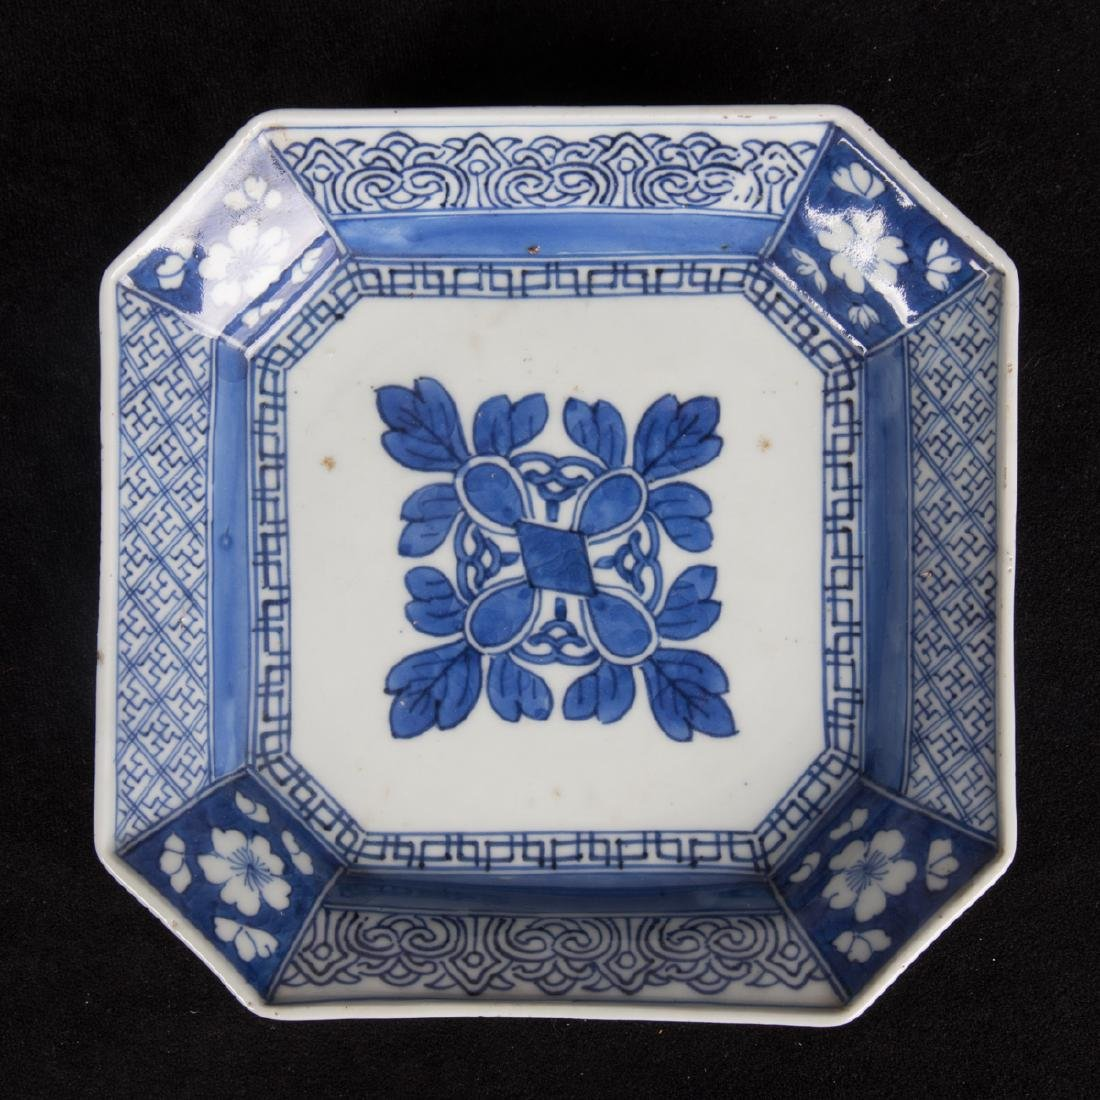 A Group of Five Chinese Blue and White Porcelain - 5